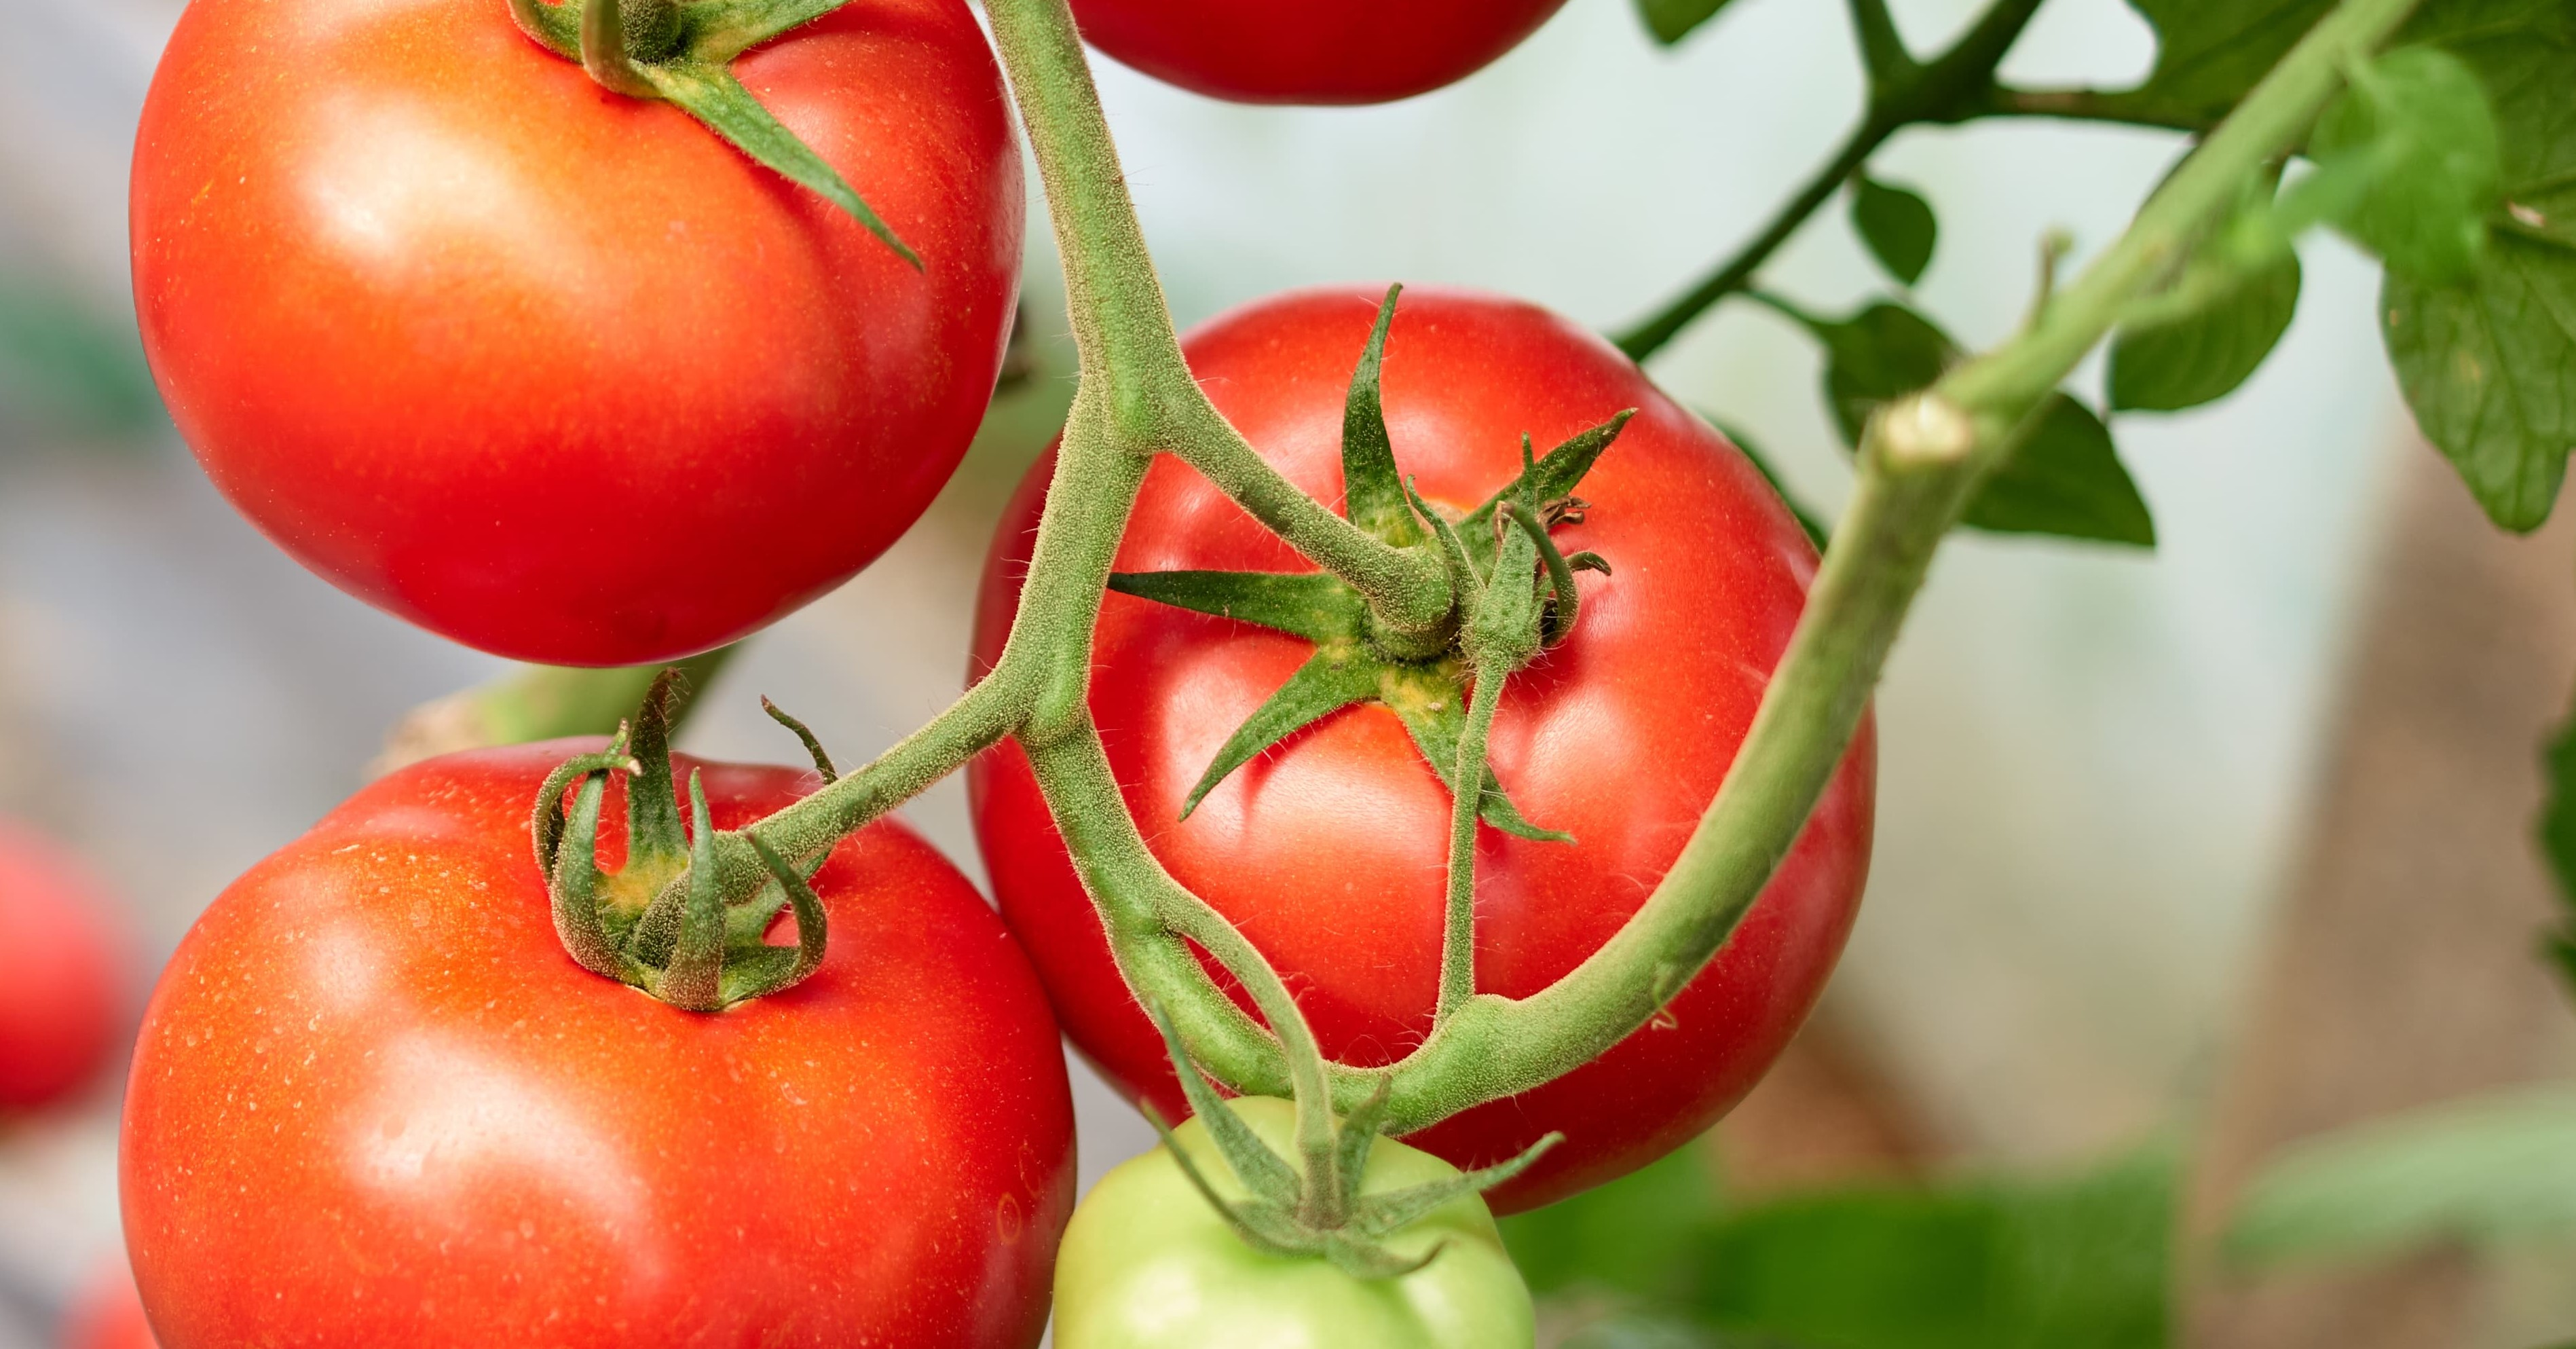 Suitable climate for Tomato cultivation